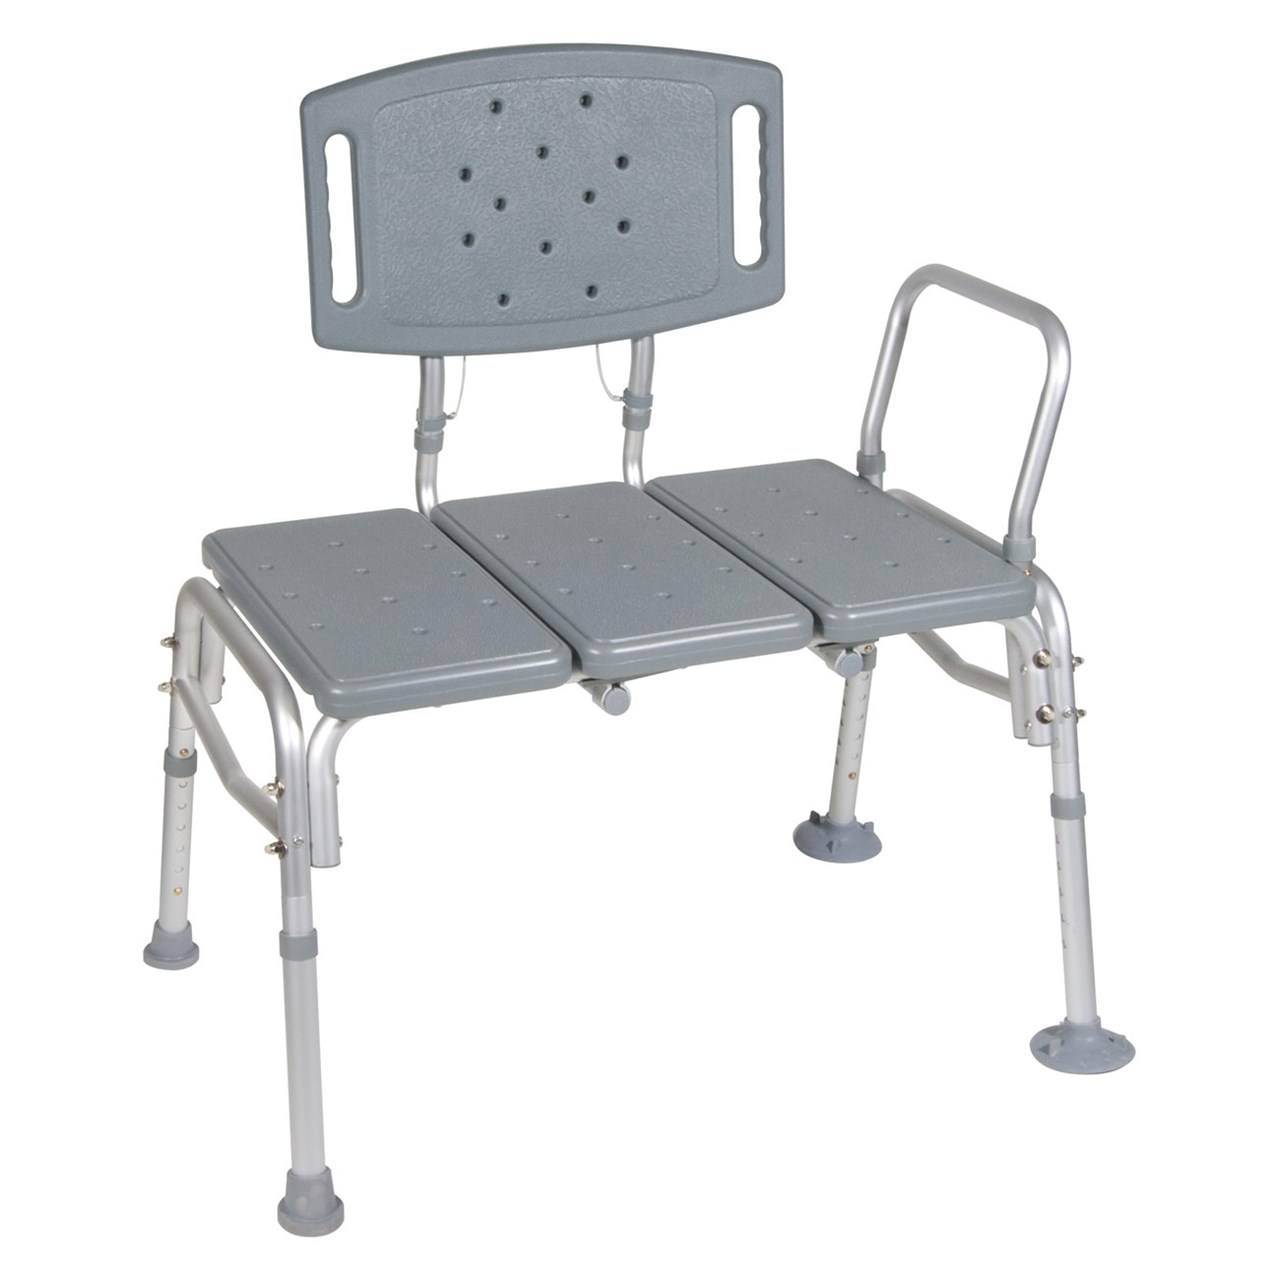 Maxiaids Deluxe Heavy Duty Transfer Bench